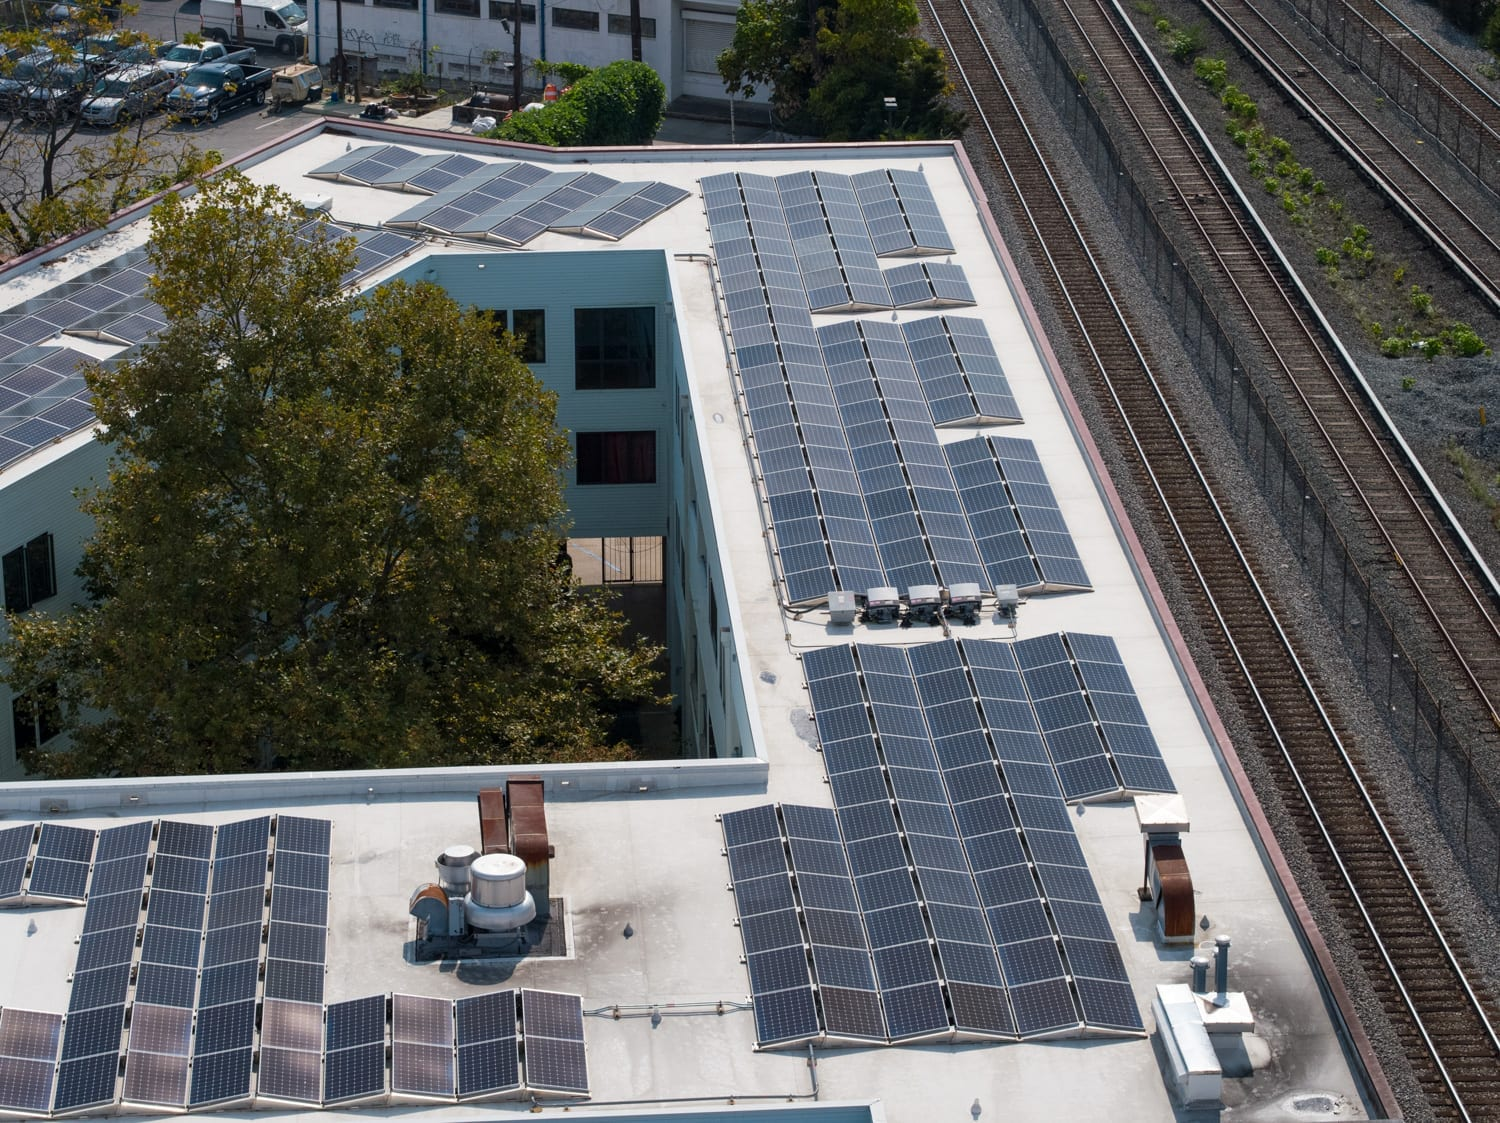 Mixed use commercial solar rooftop array